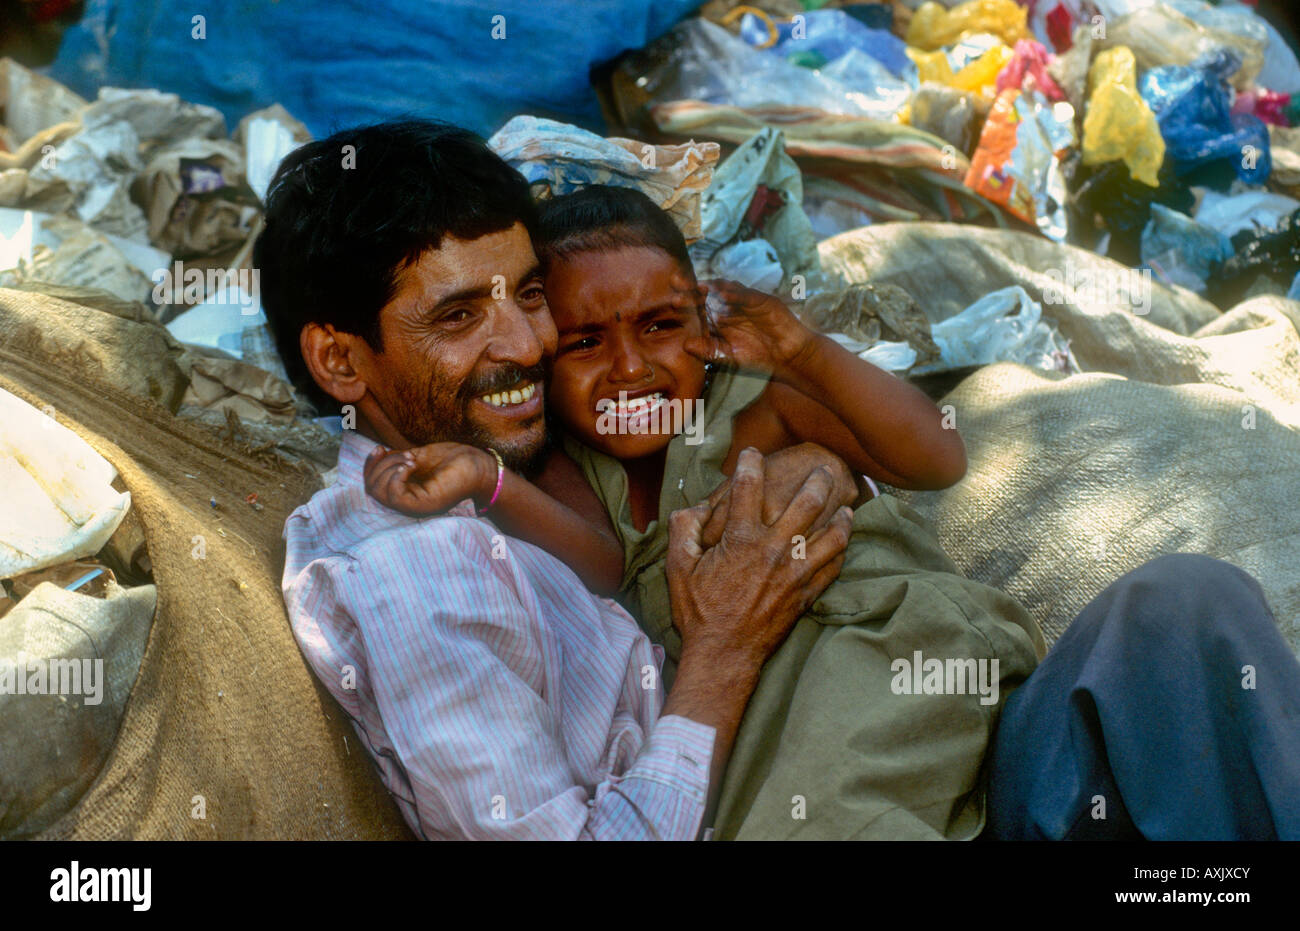 Father holding crying daughter in the middle of rubbish dump where they live homeless on the outskirts of Mumbai - Stock Image